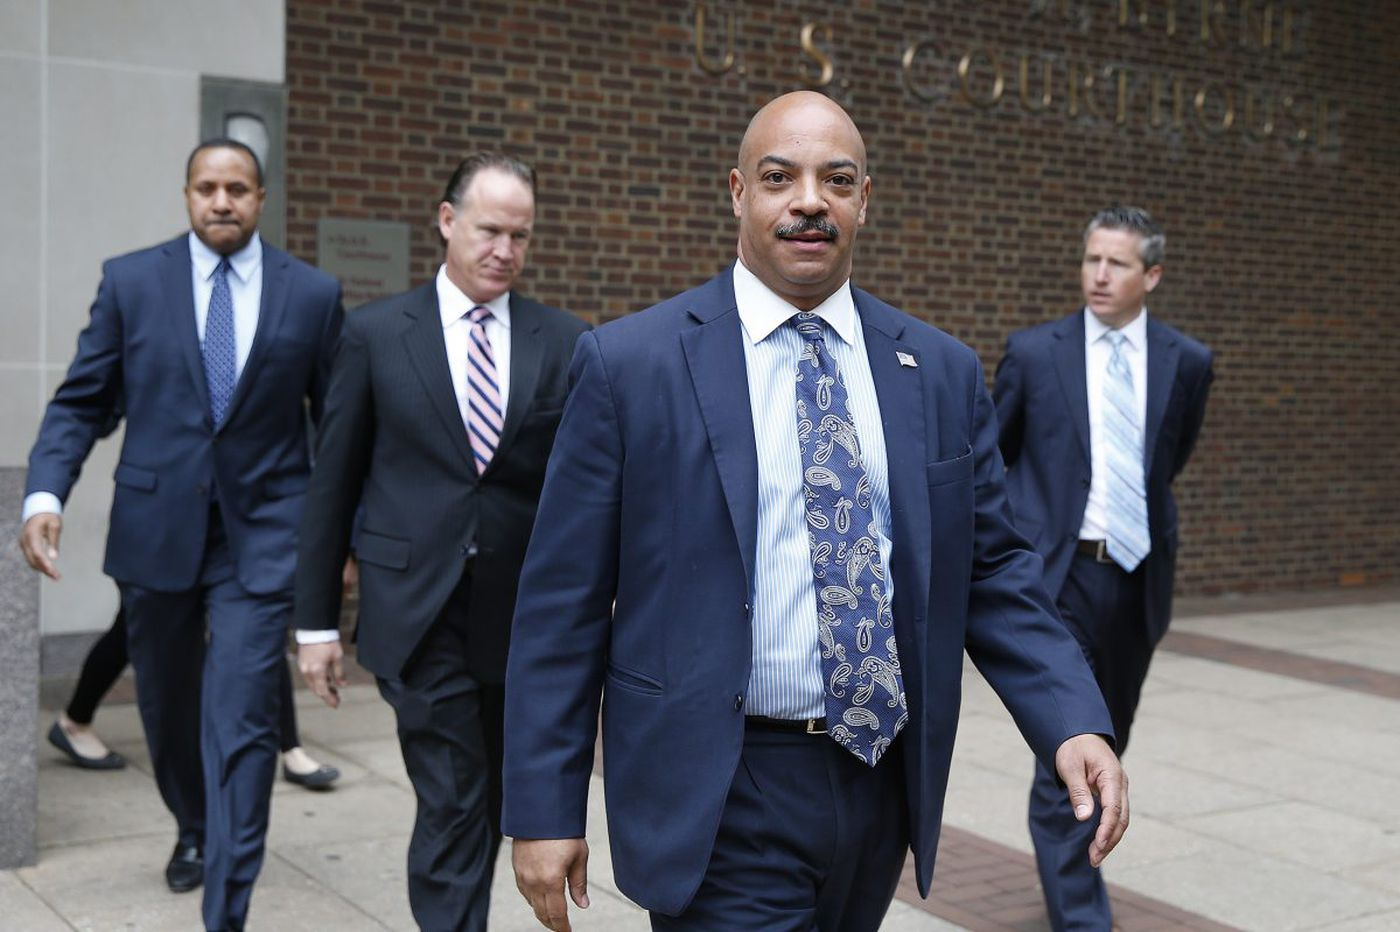 'Look at him now' - ambitious Philly DA Seth Williams falls hard